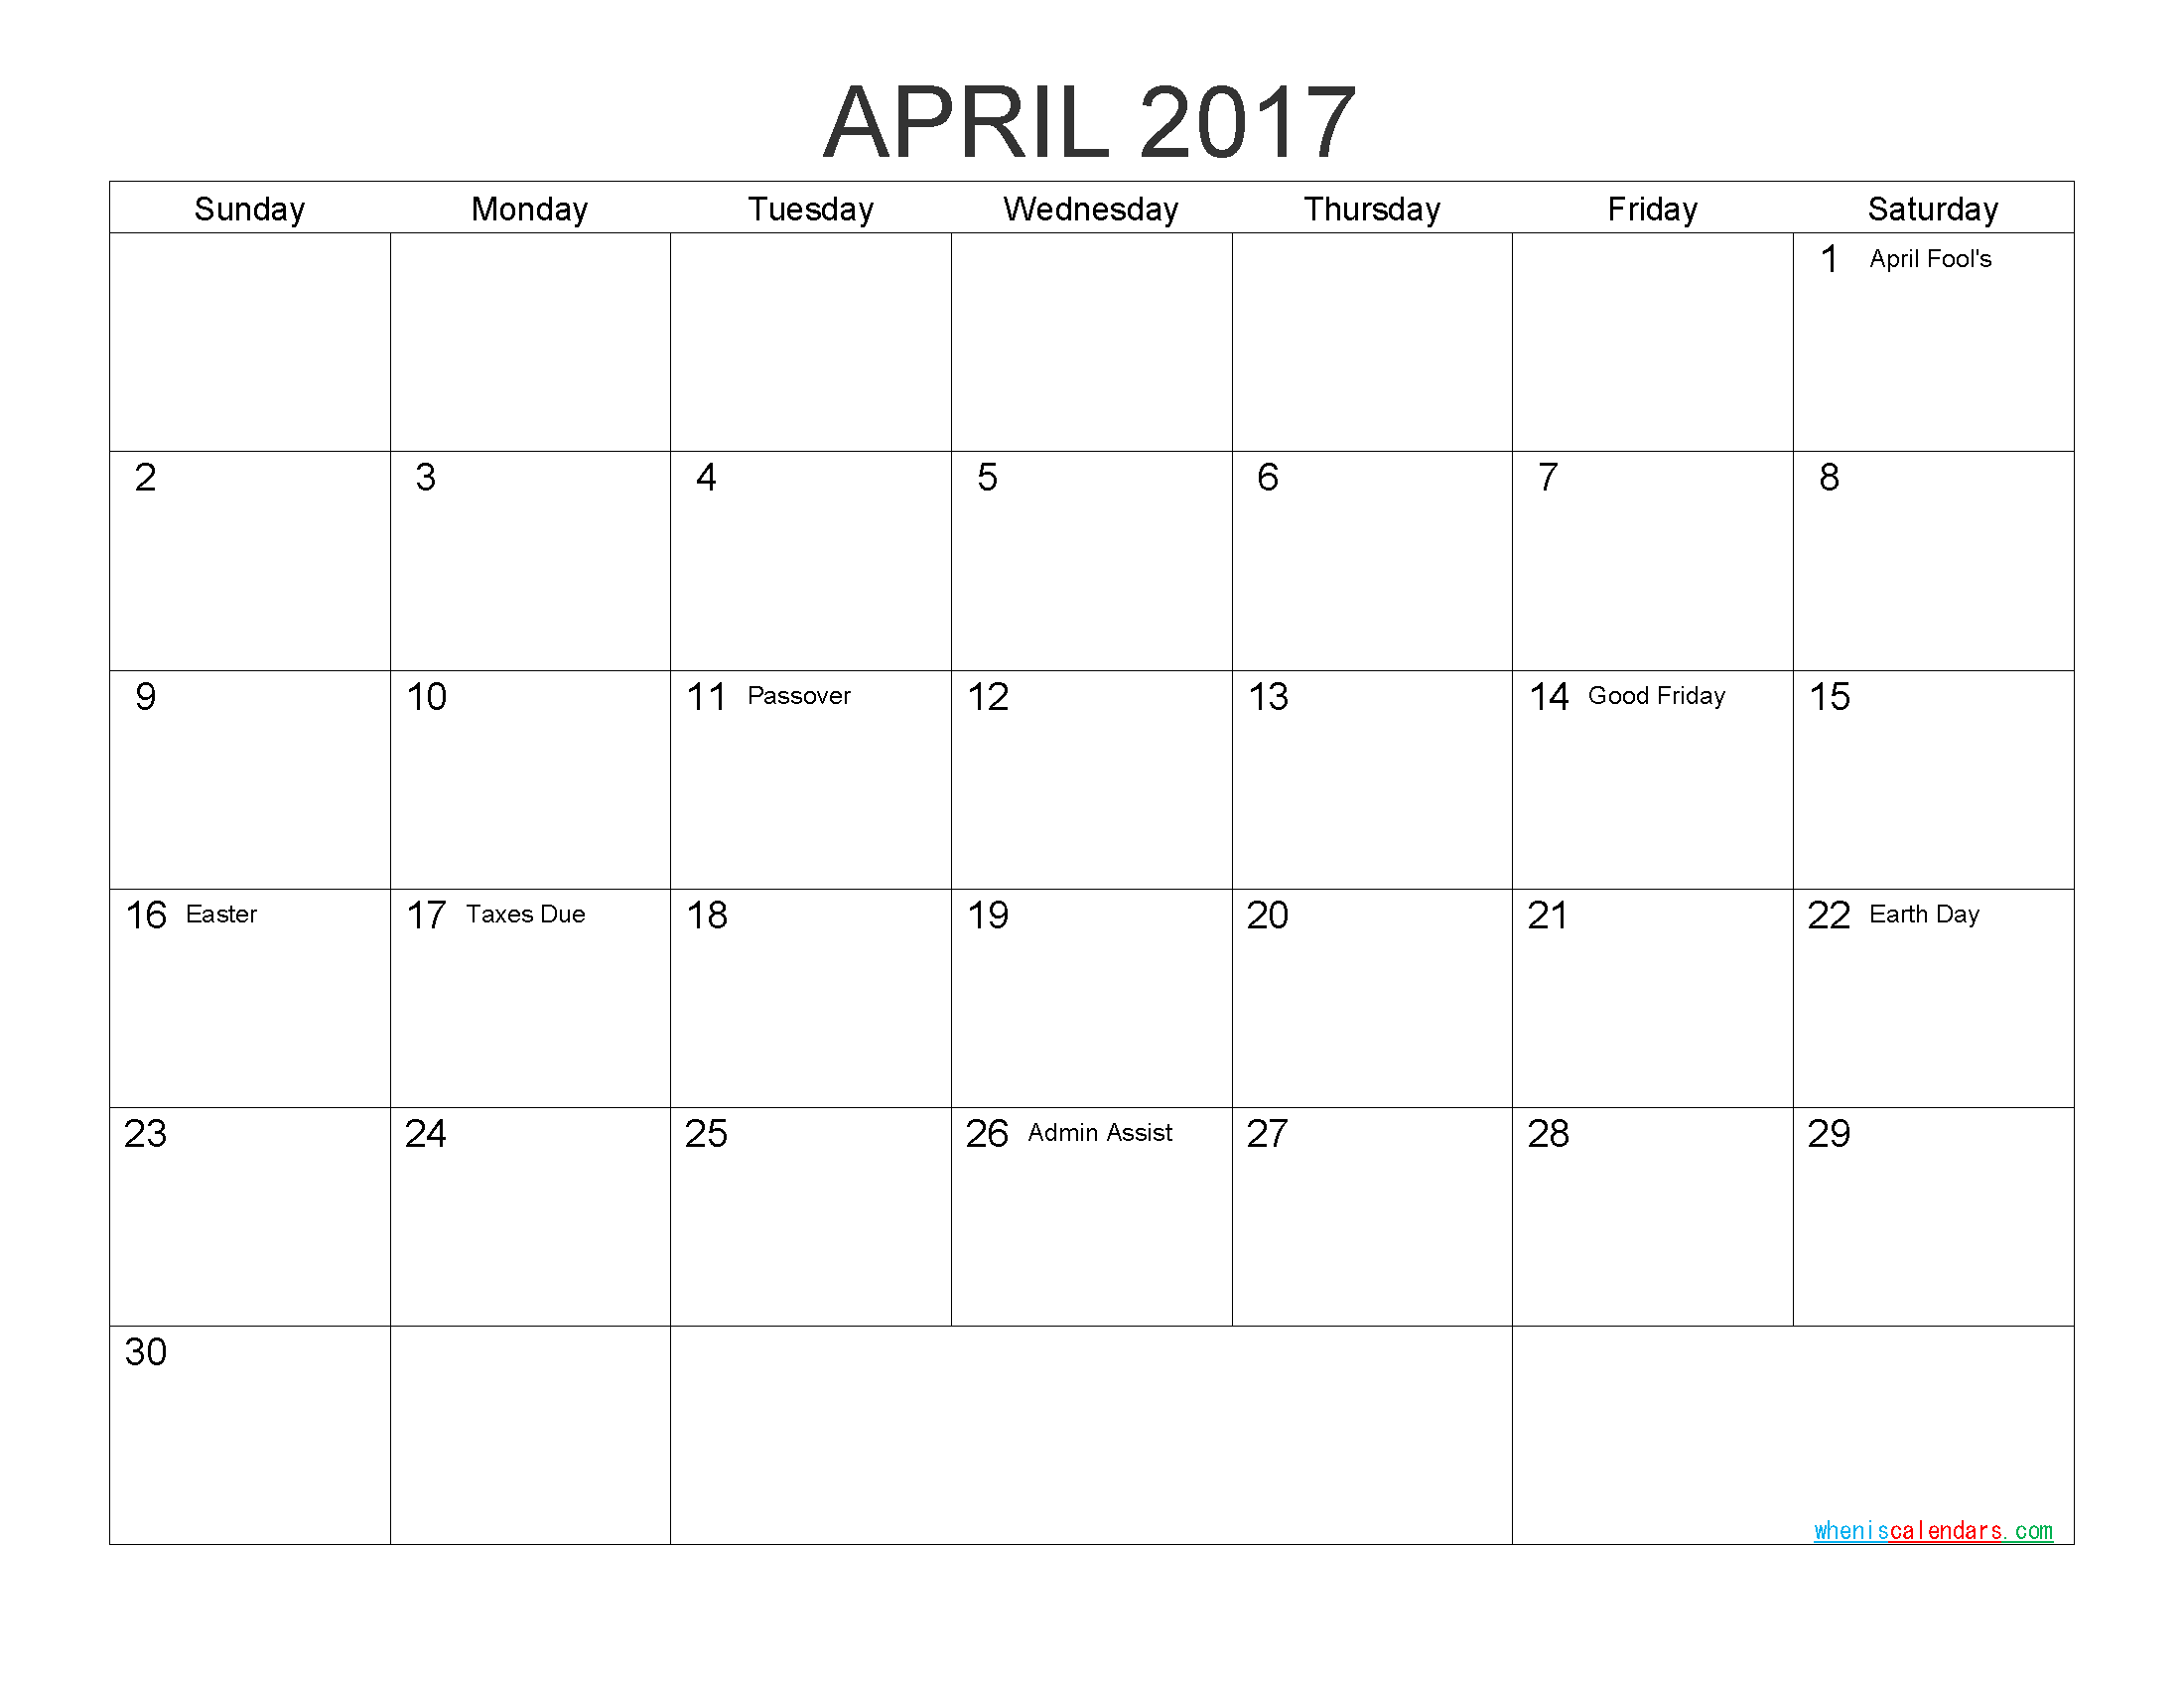 Download Free Calendar April 2017 Printable Calendar with Holidays as PDF and Image